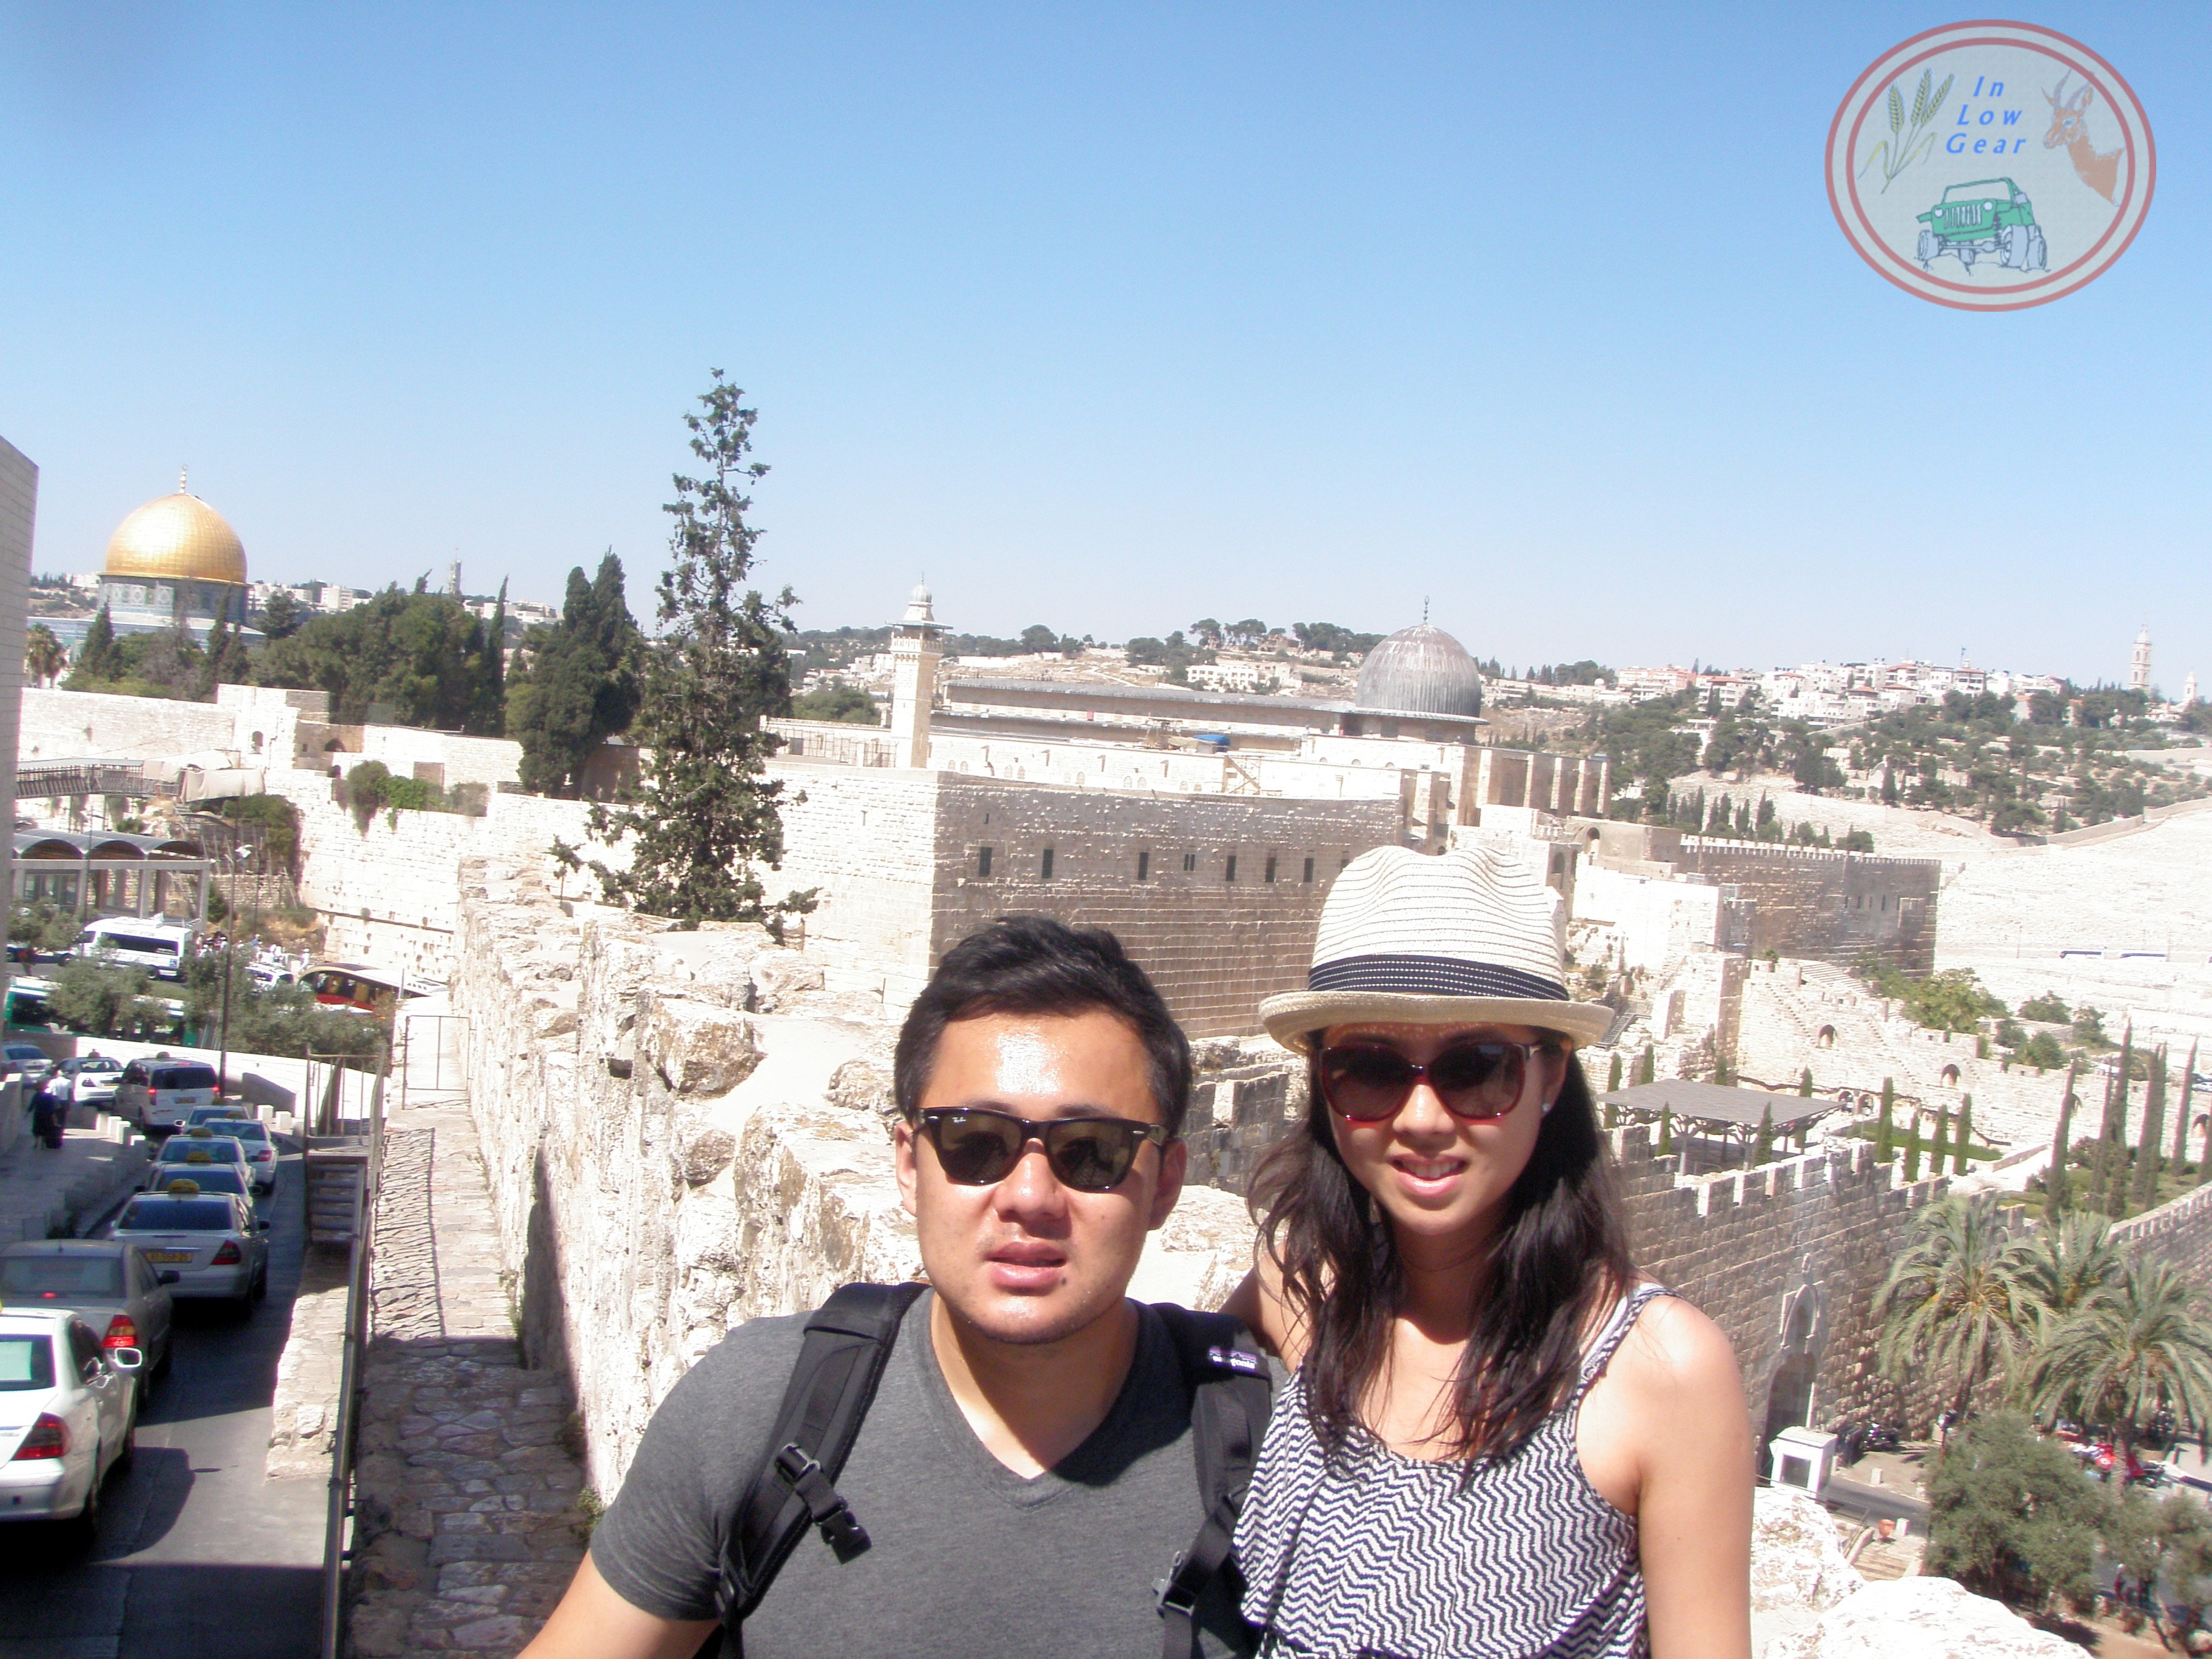 Jerusalem Mt. of Olives, the old city walls, El Aqsa and Dome of the Rock